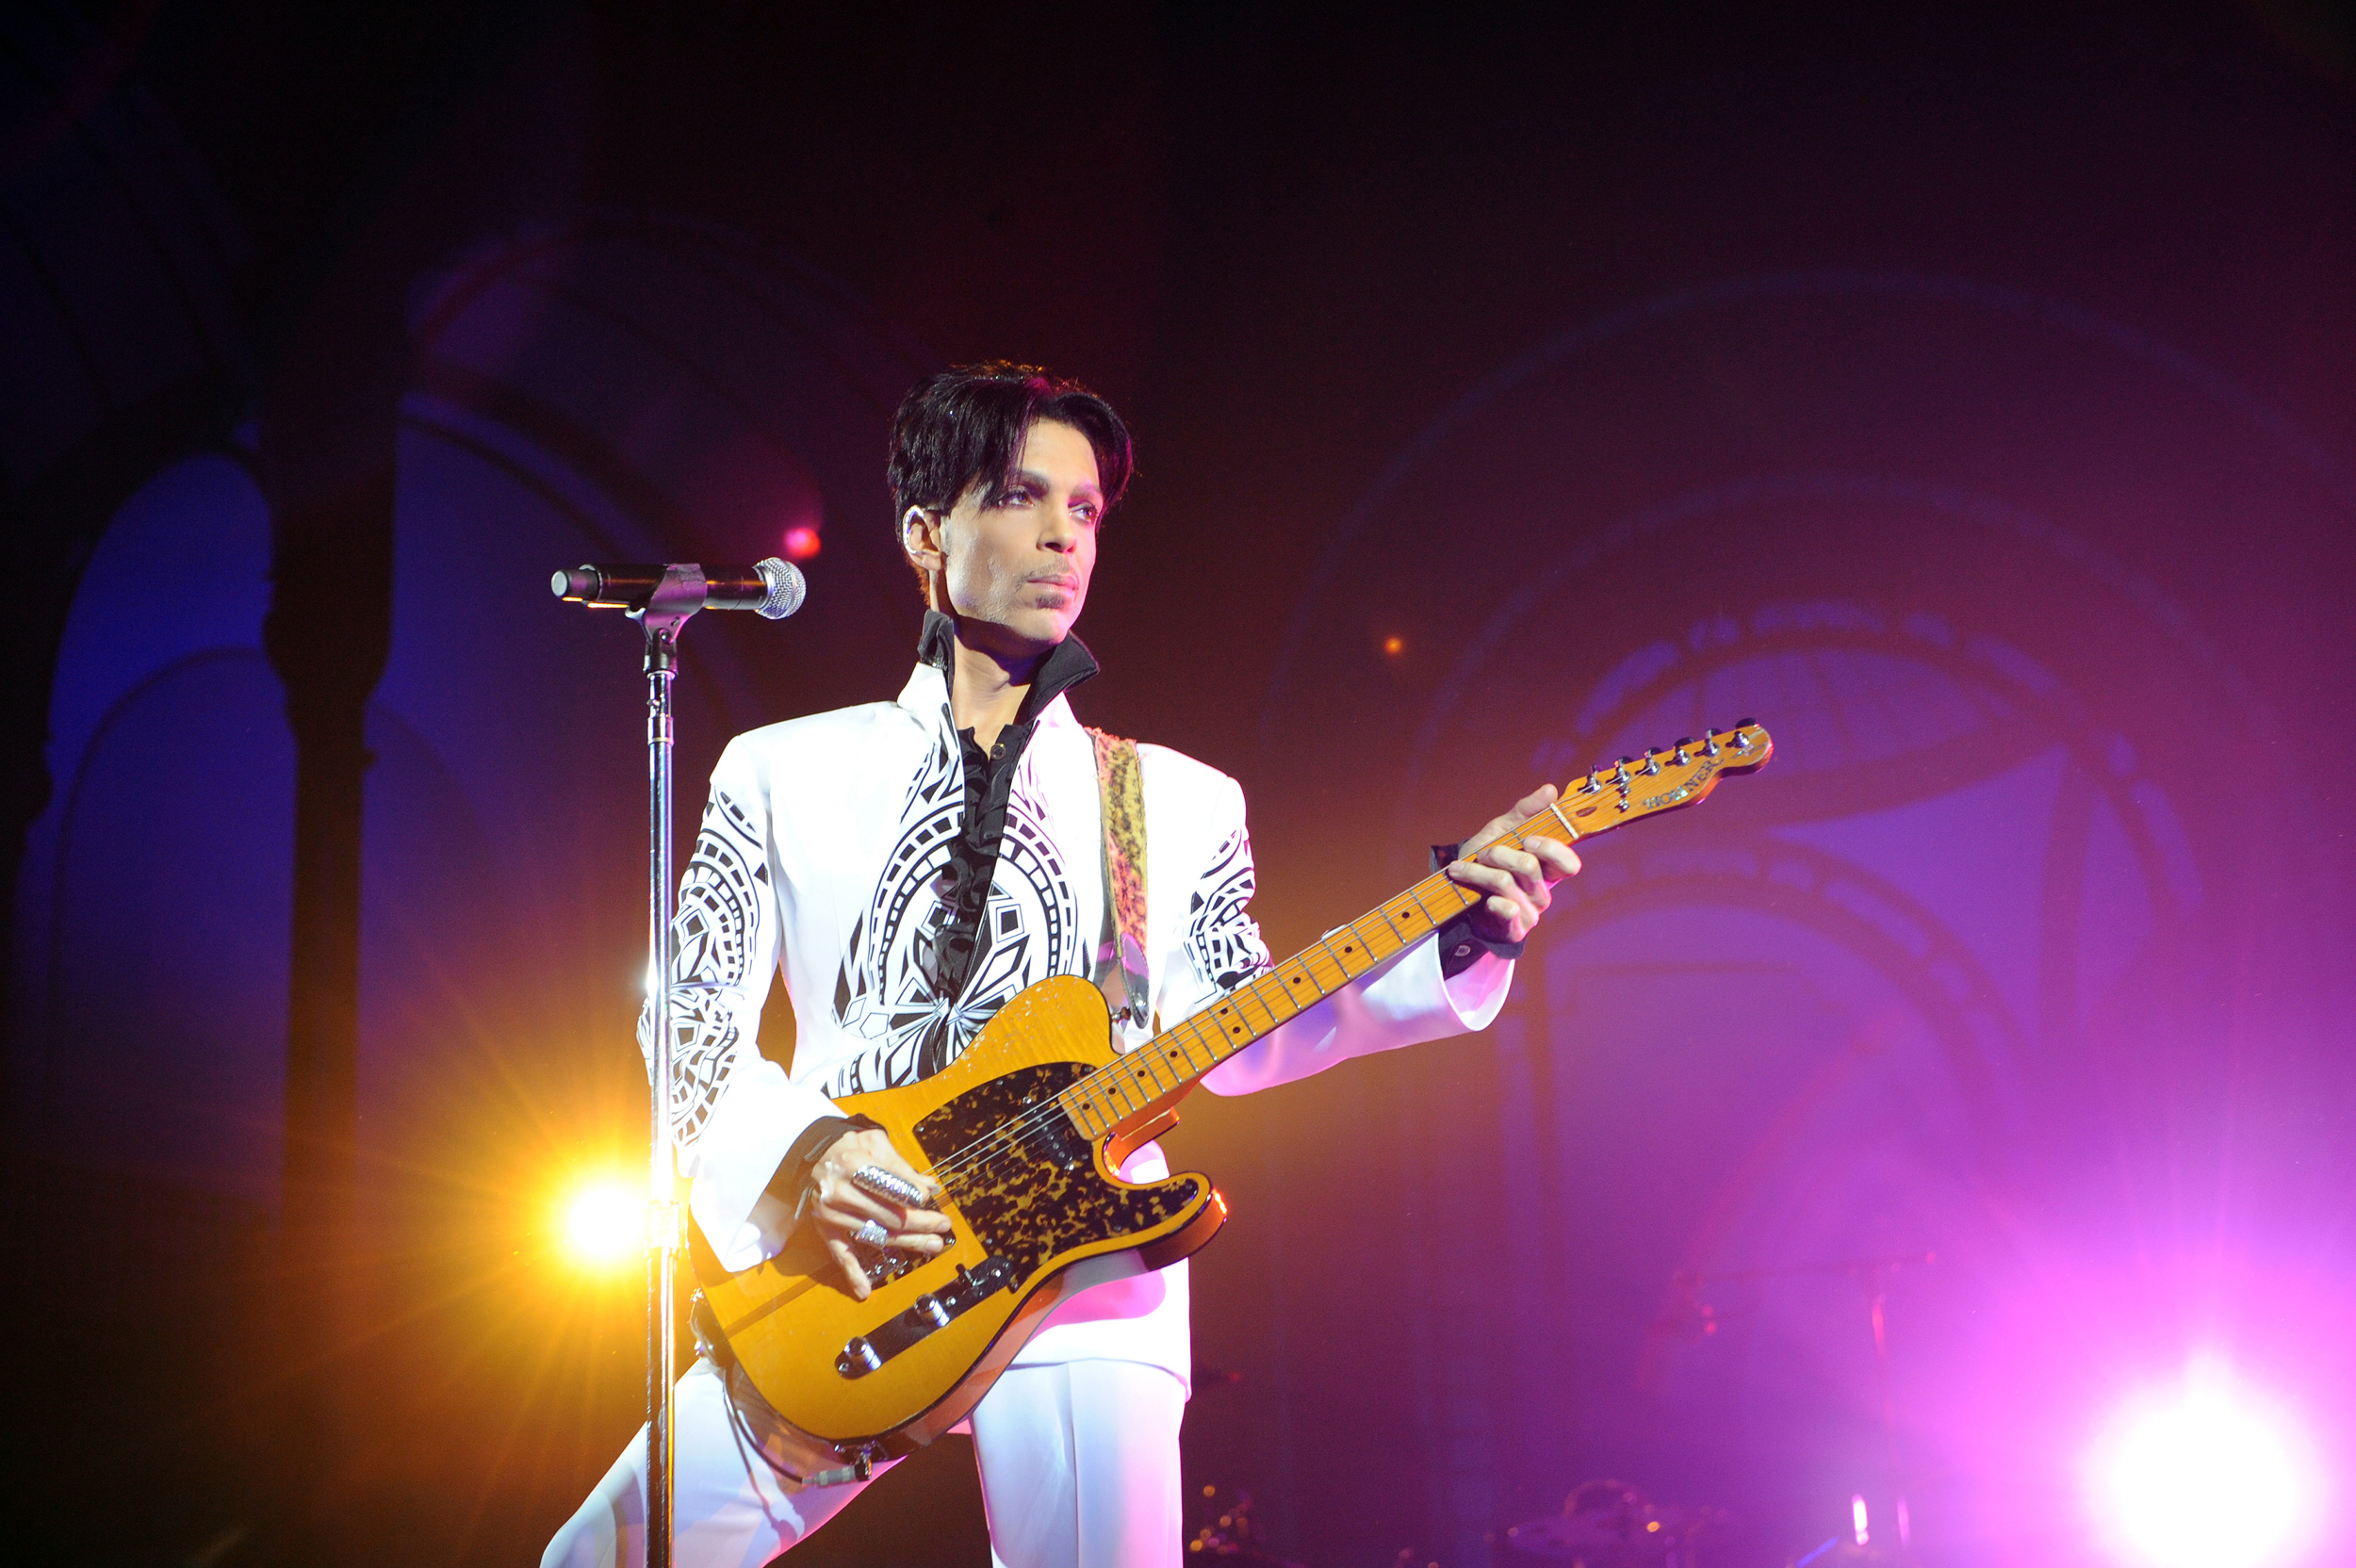 Prince's-estate-to-release-'lost'-2010-album-'Welcome-2-America'-in-July